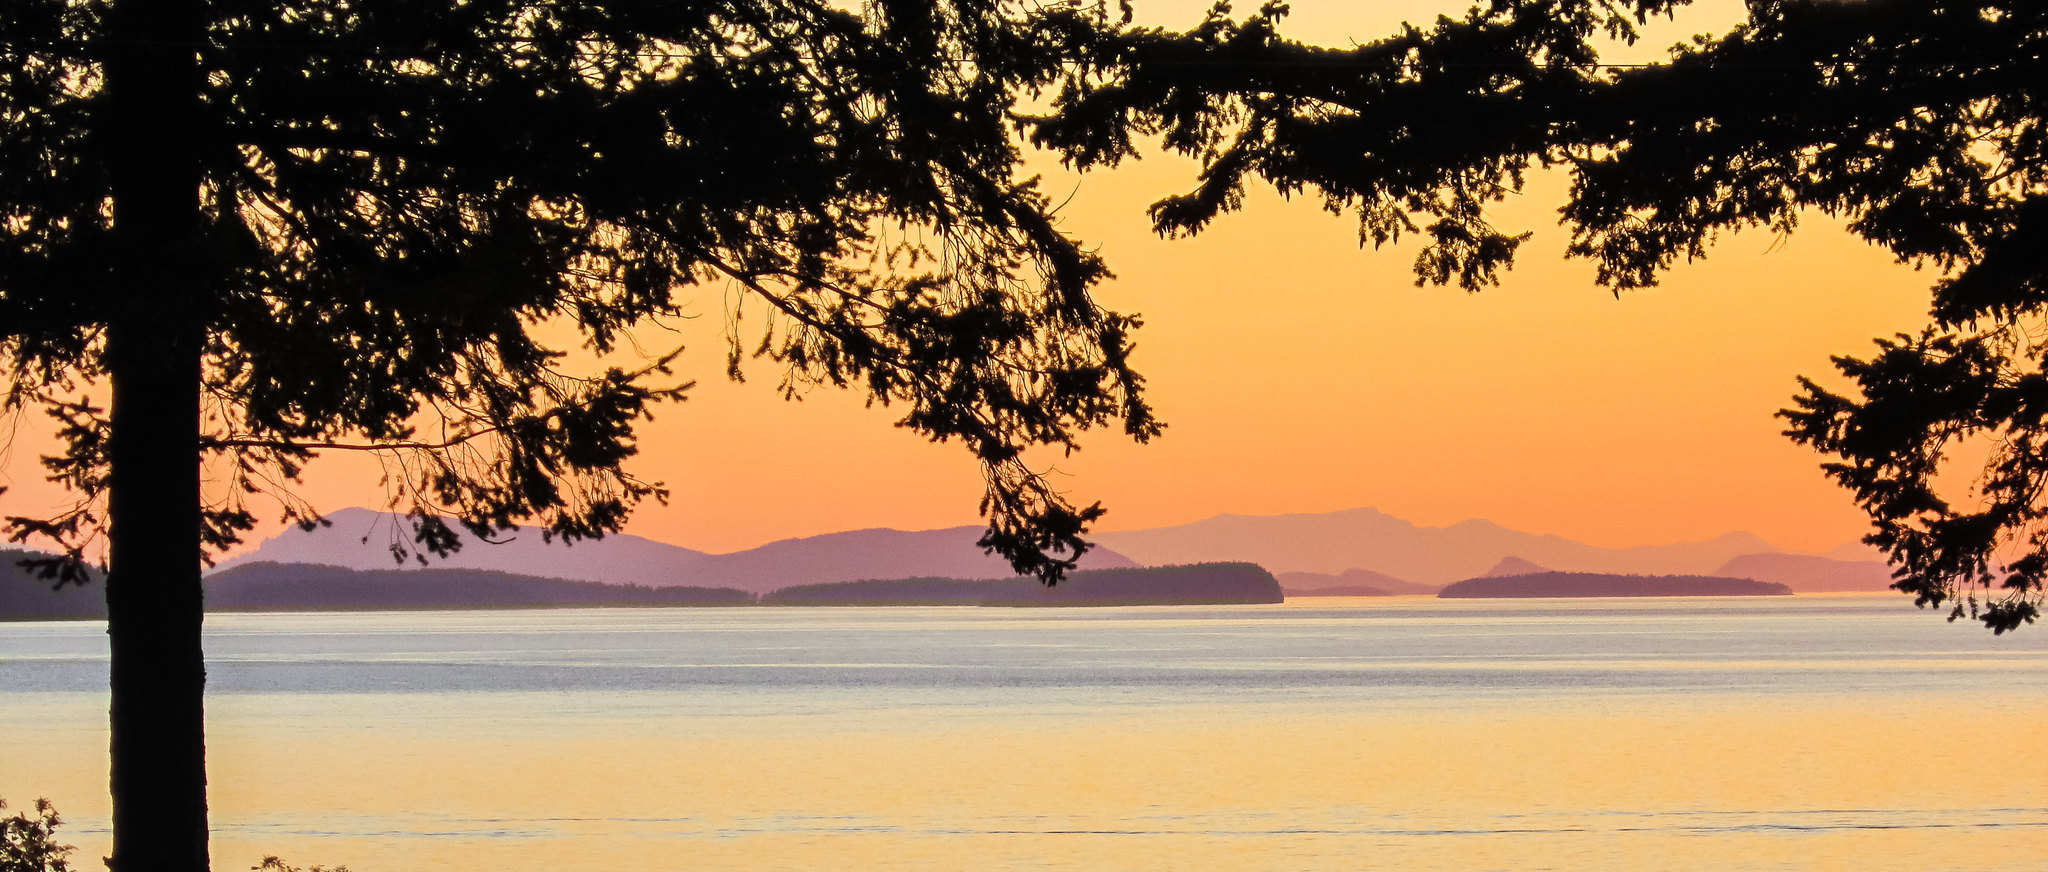 Dusk on Lummi Island by Ed Suominen, on Flickr